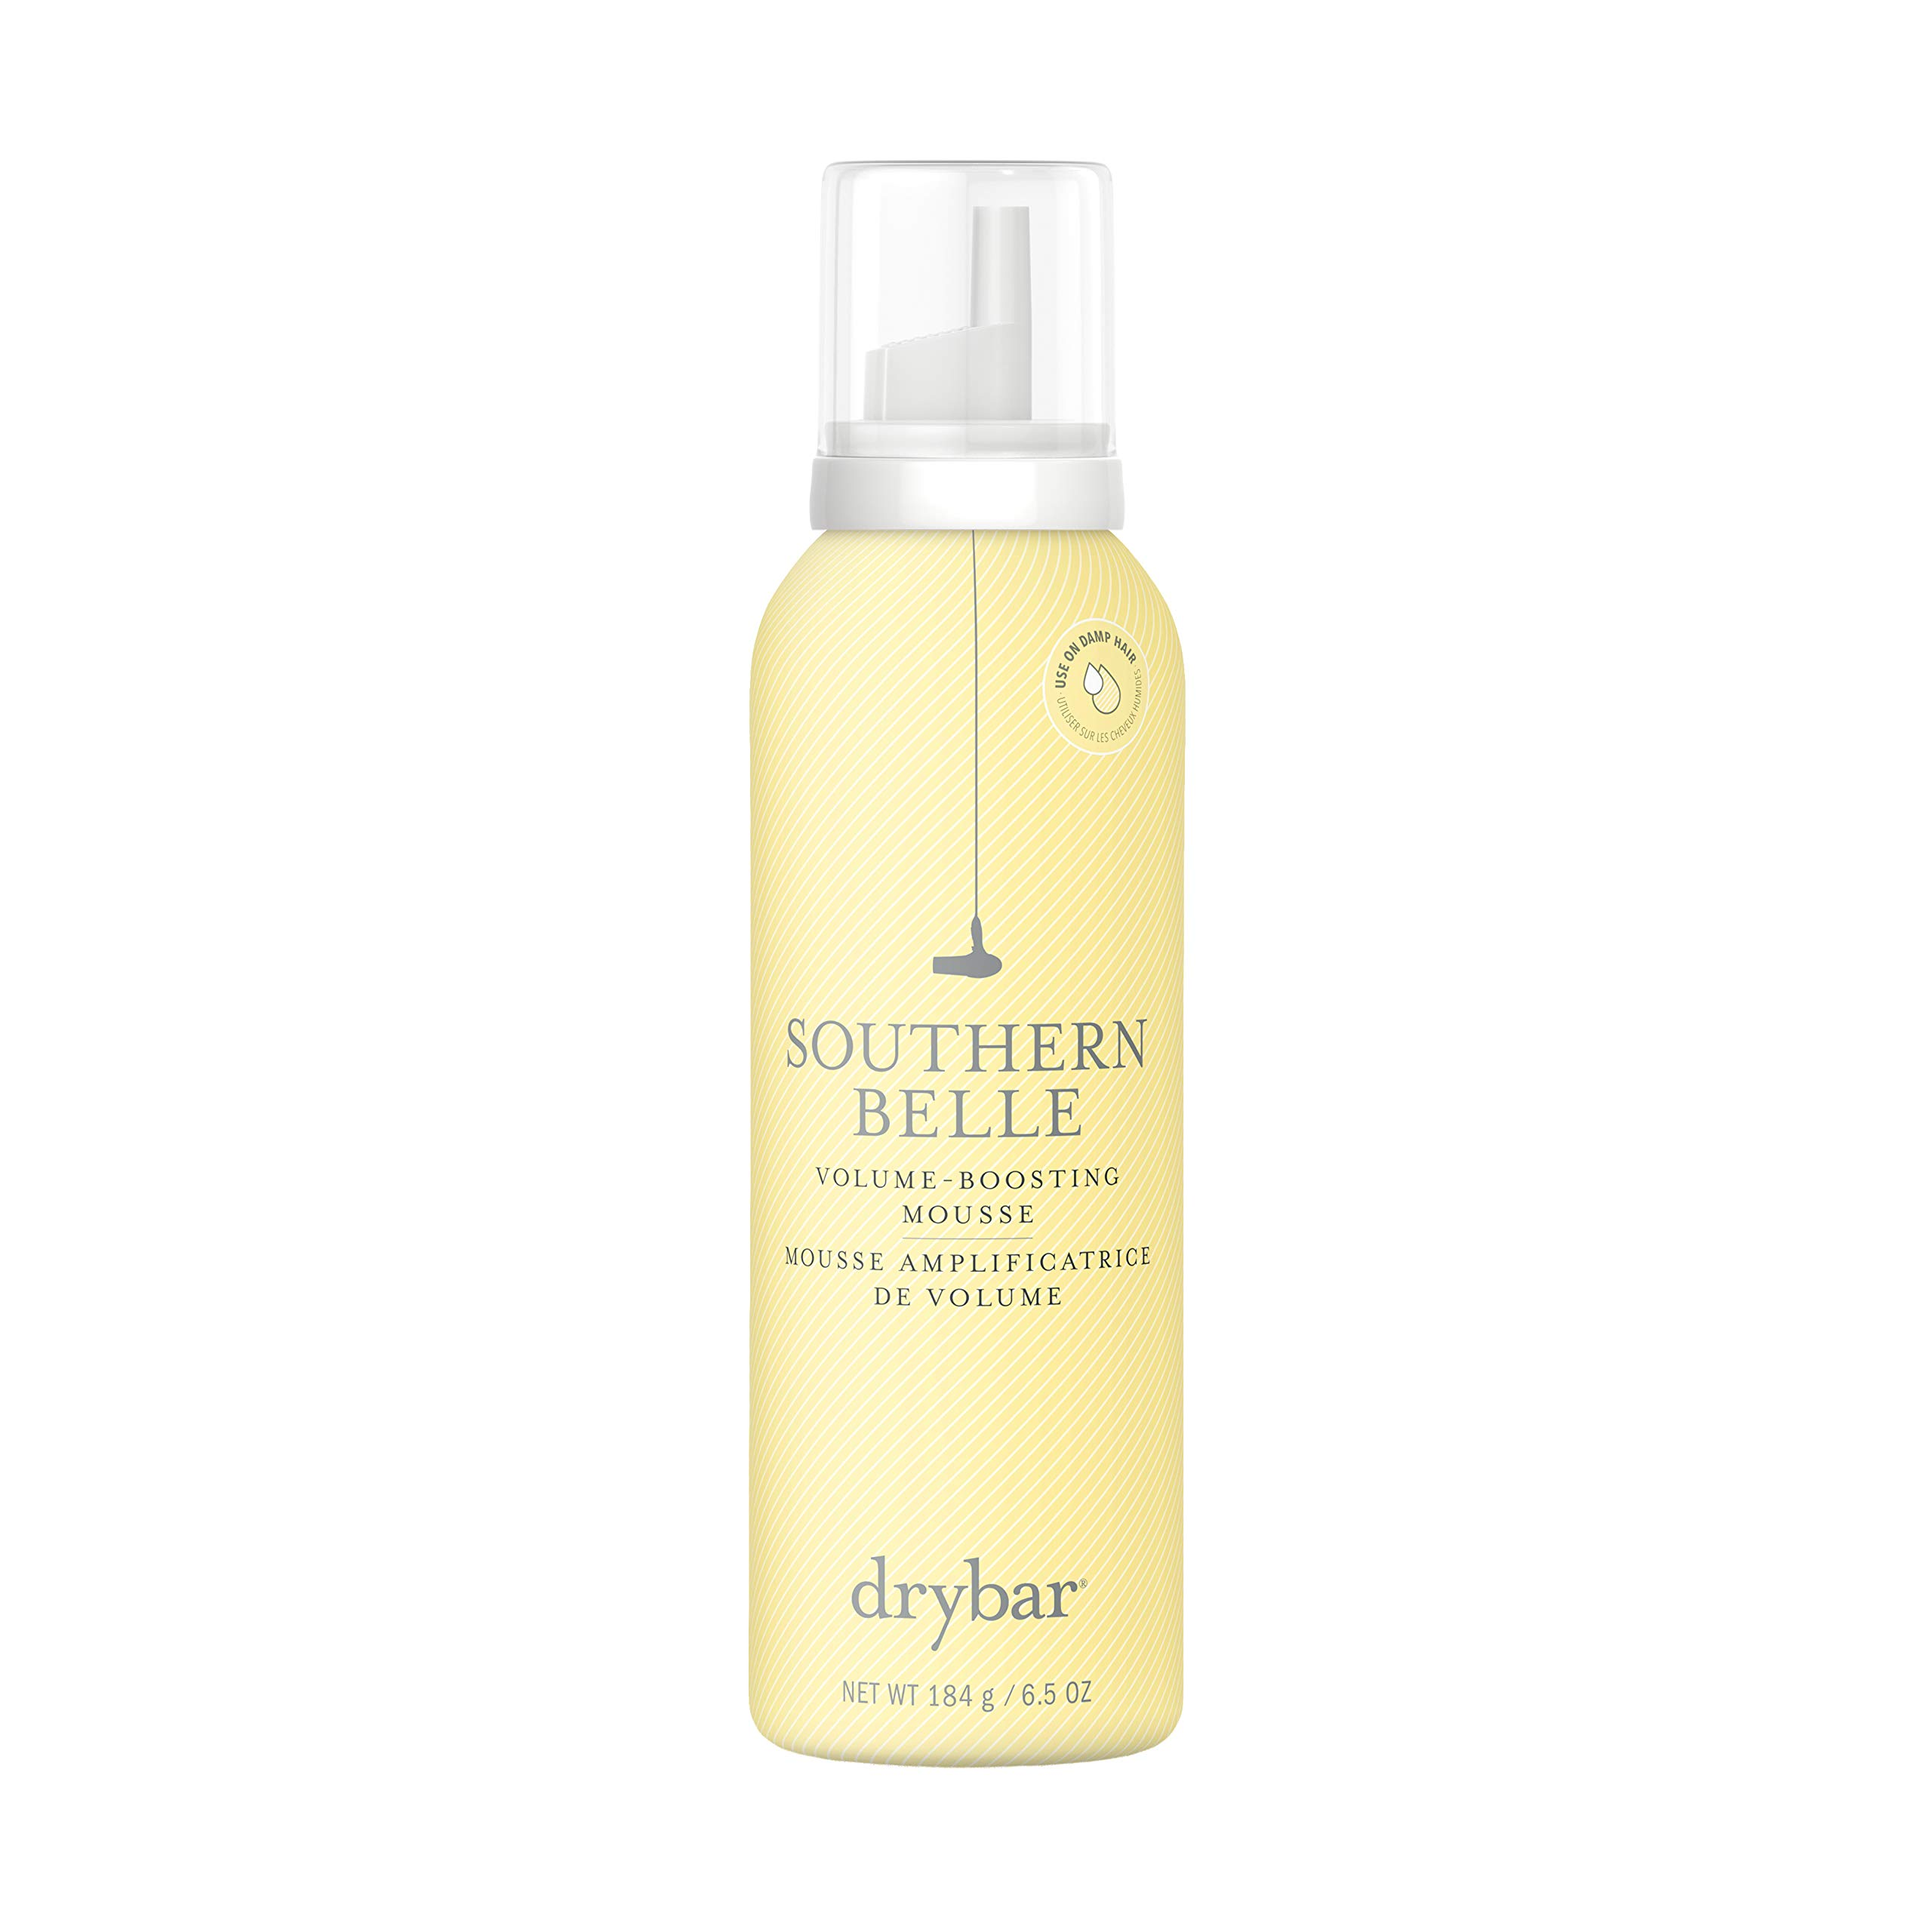 Drybar Southern Belle Volume-Boosting Mousse 6.5 Ounces by Drybar